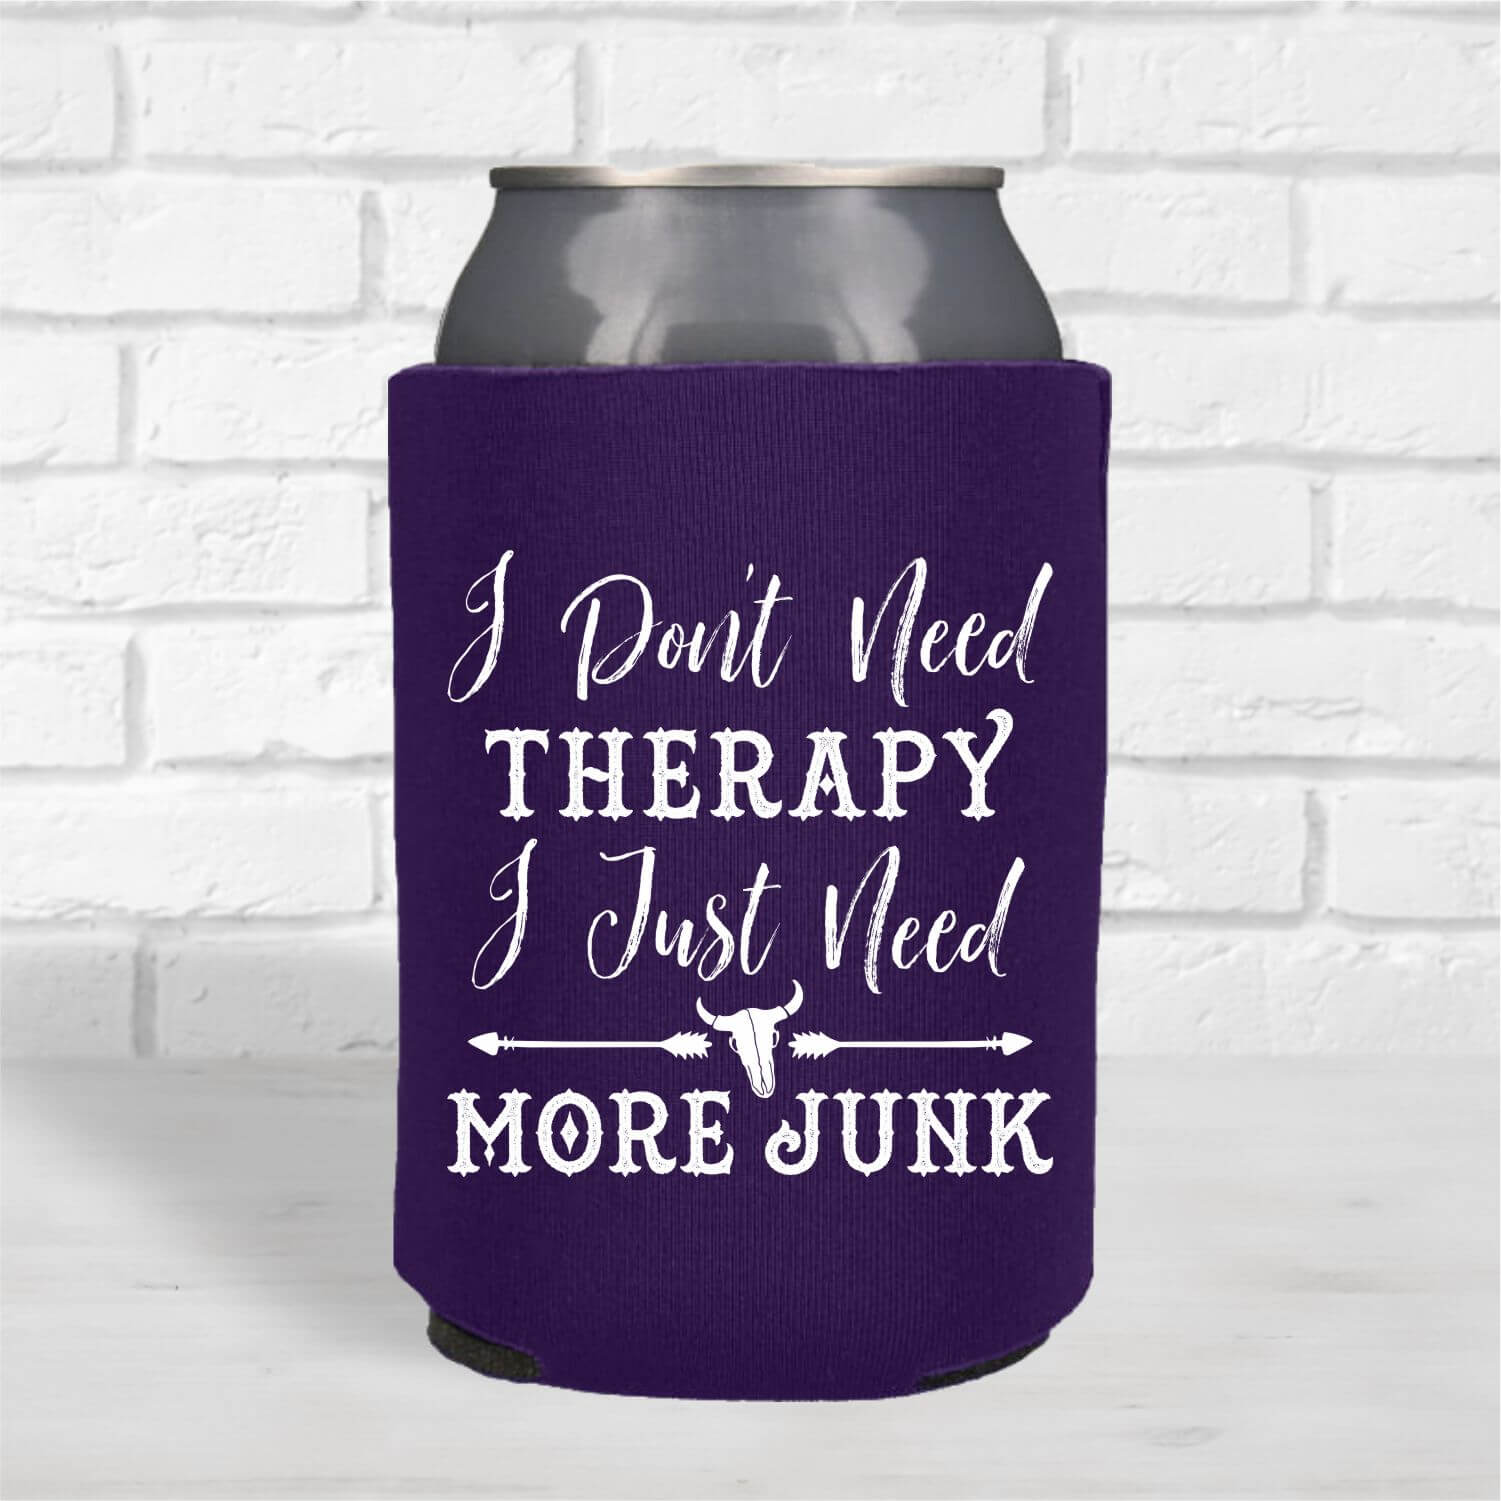 Can Coolers-Junk-Therapy